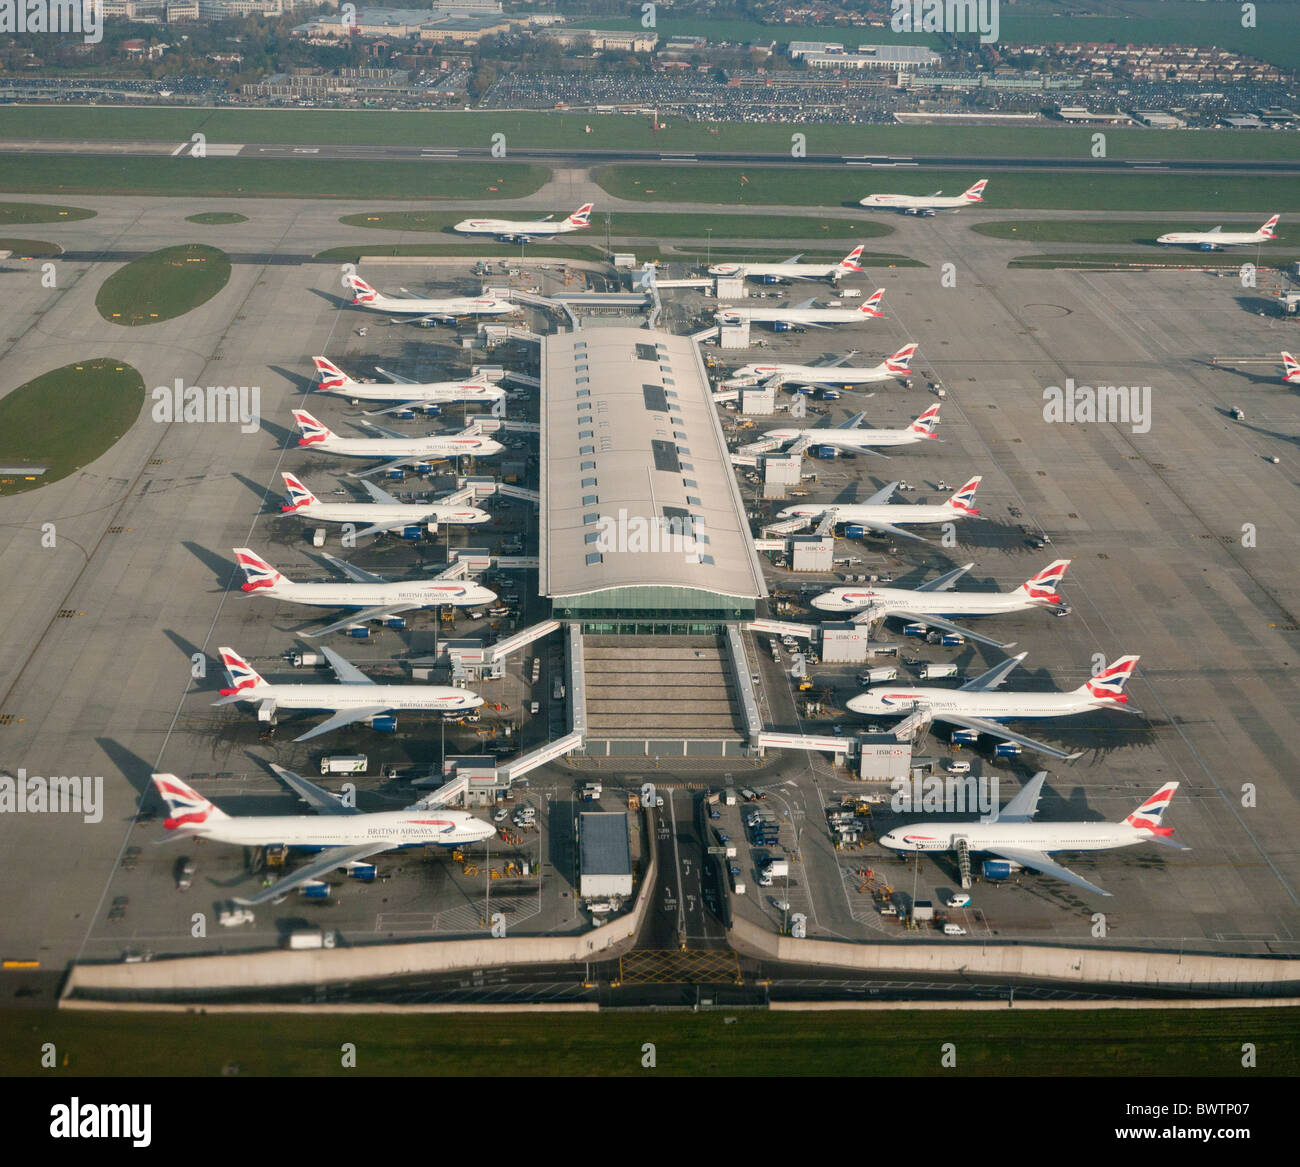 British airways planes at Terminal 5 Heathrow airport in Britain - Stock Image